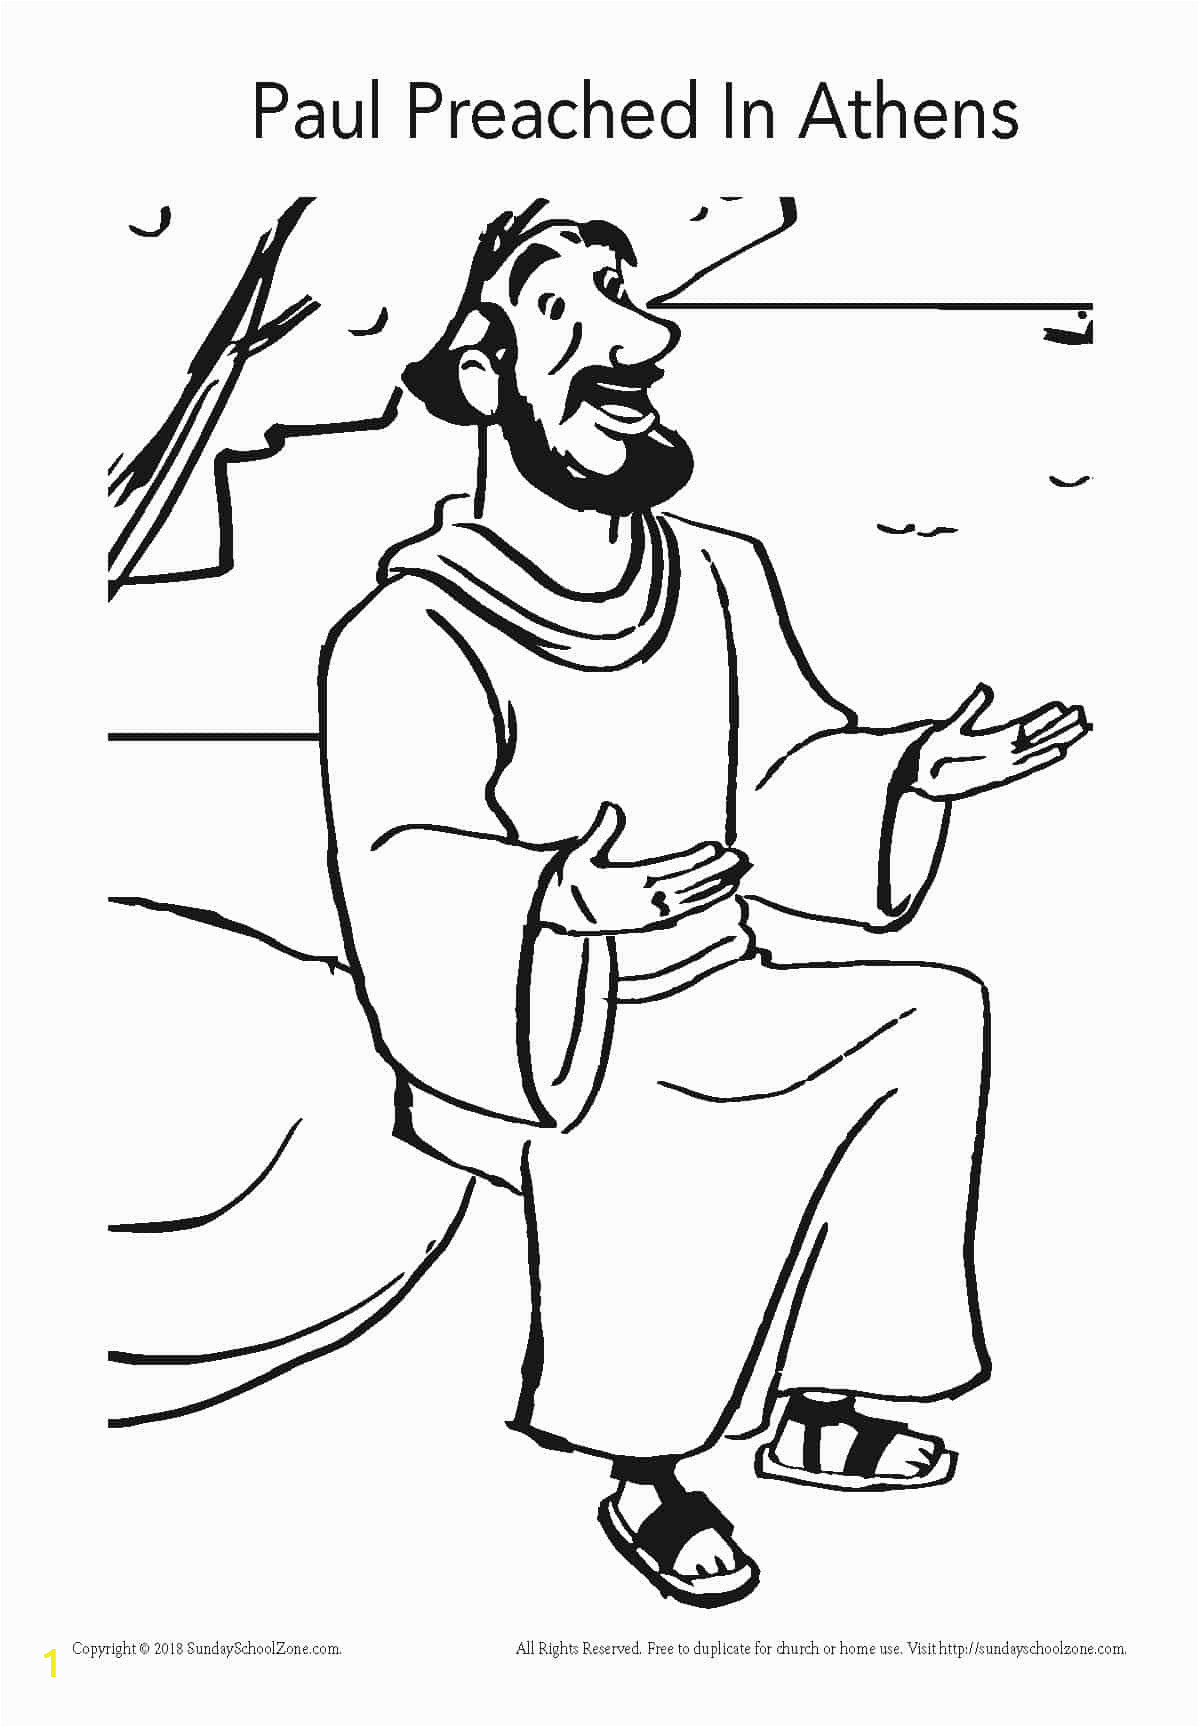 Paul Taught In athens Coloring Page Paul Preached In athens Coloring Page On Sunday School Zone